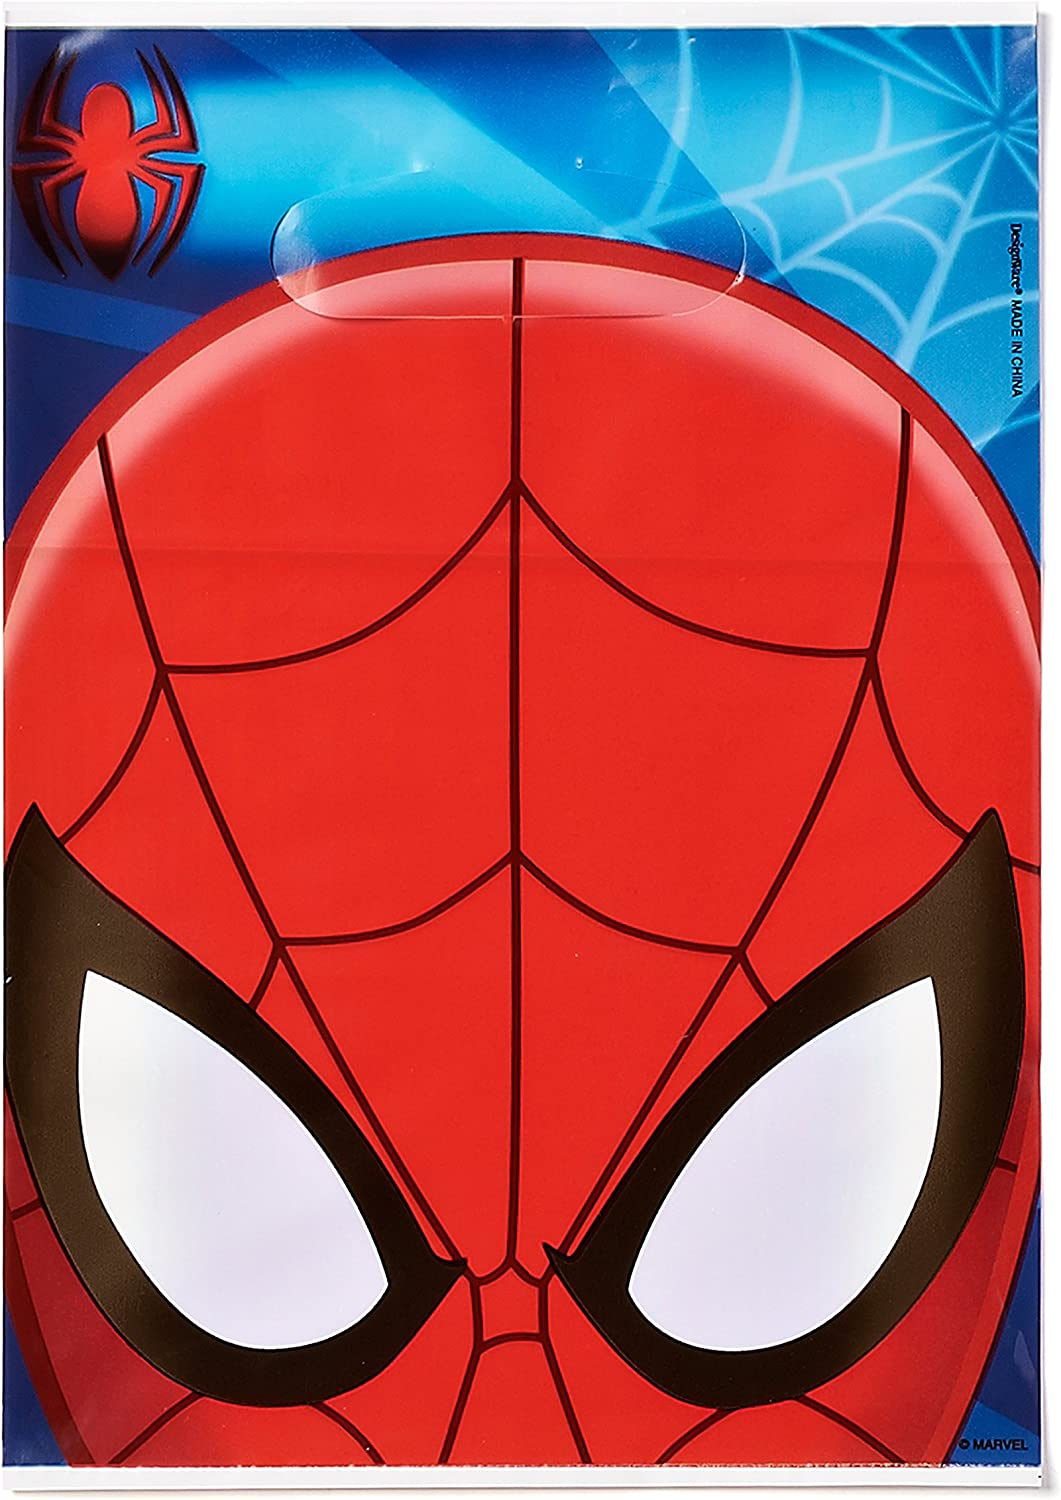 Tha Amazing Spiderman Spider-Man Spider Man Card Mask Party Celebrate Dress Up